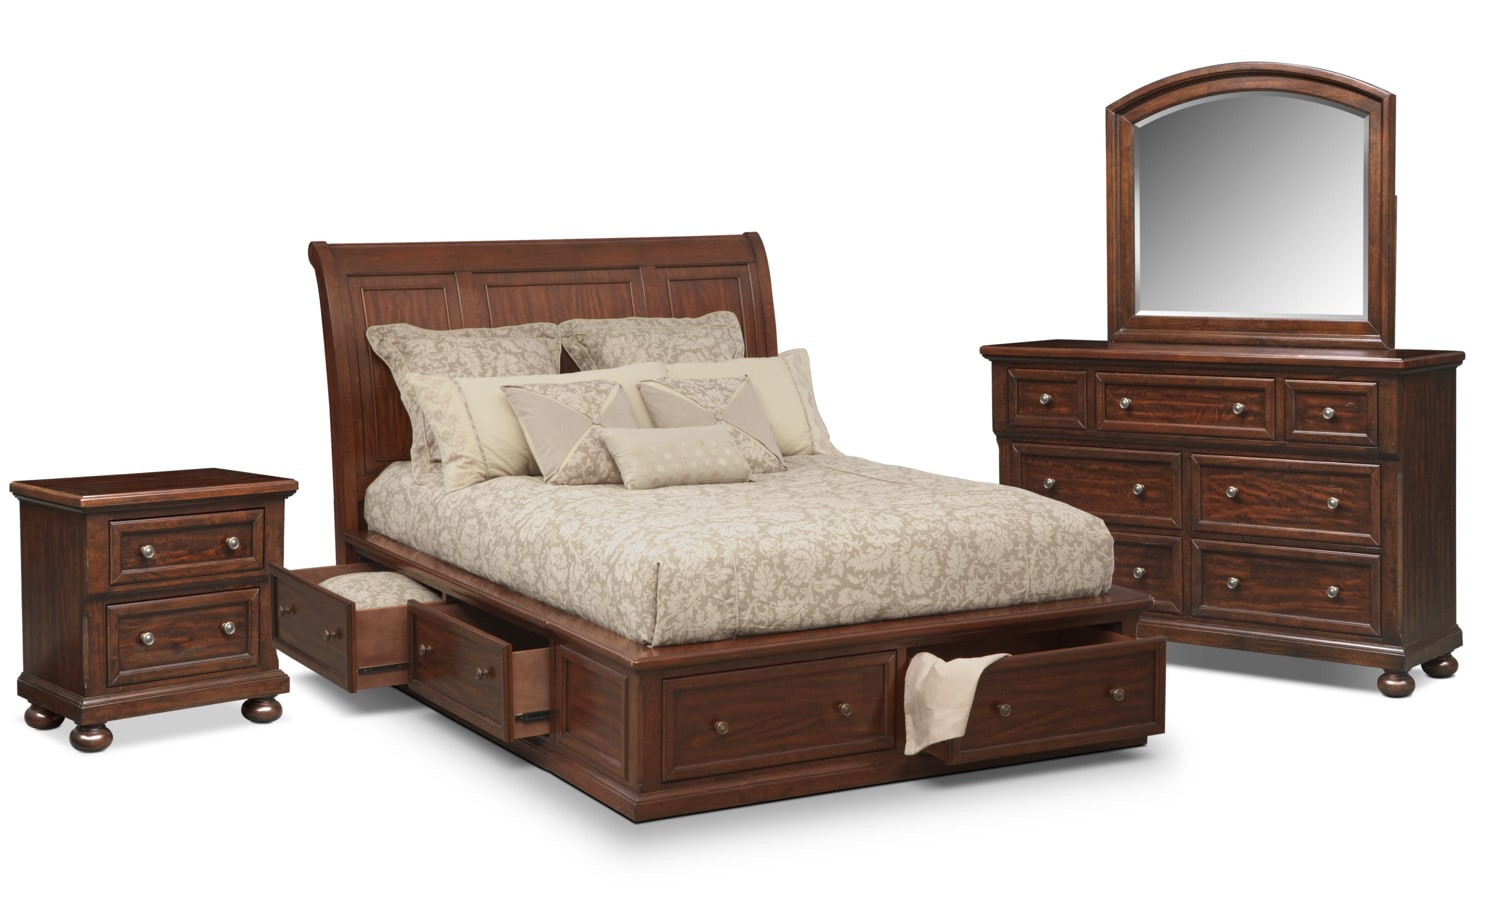 Hanover 6-Piece Storage Bedroom Set with Nightstand, Dresser and Mirror